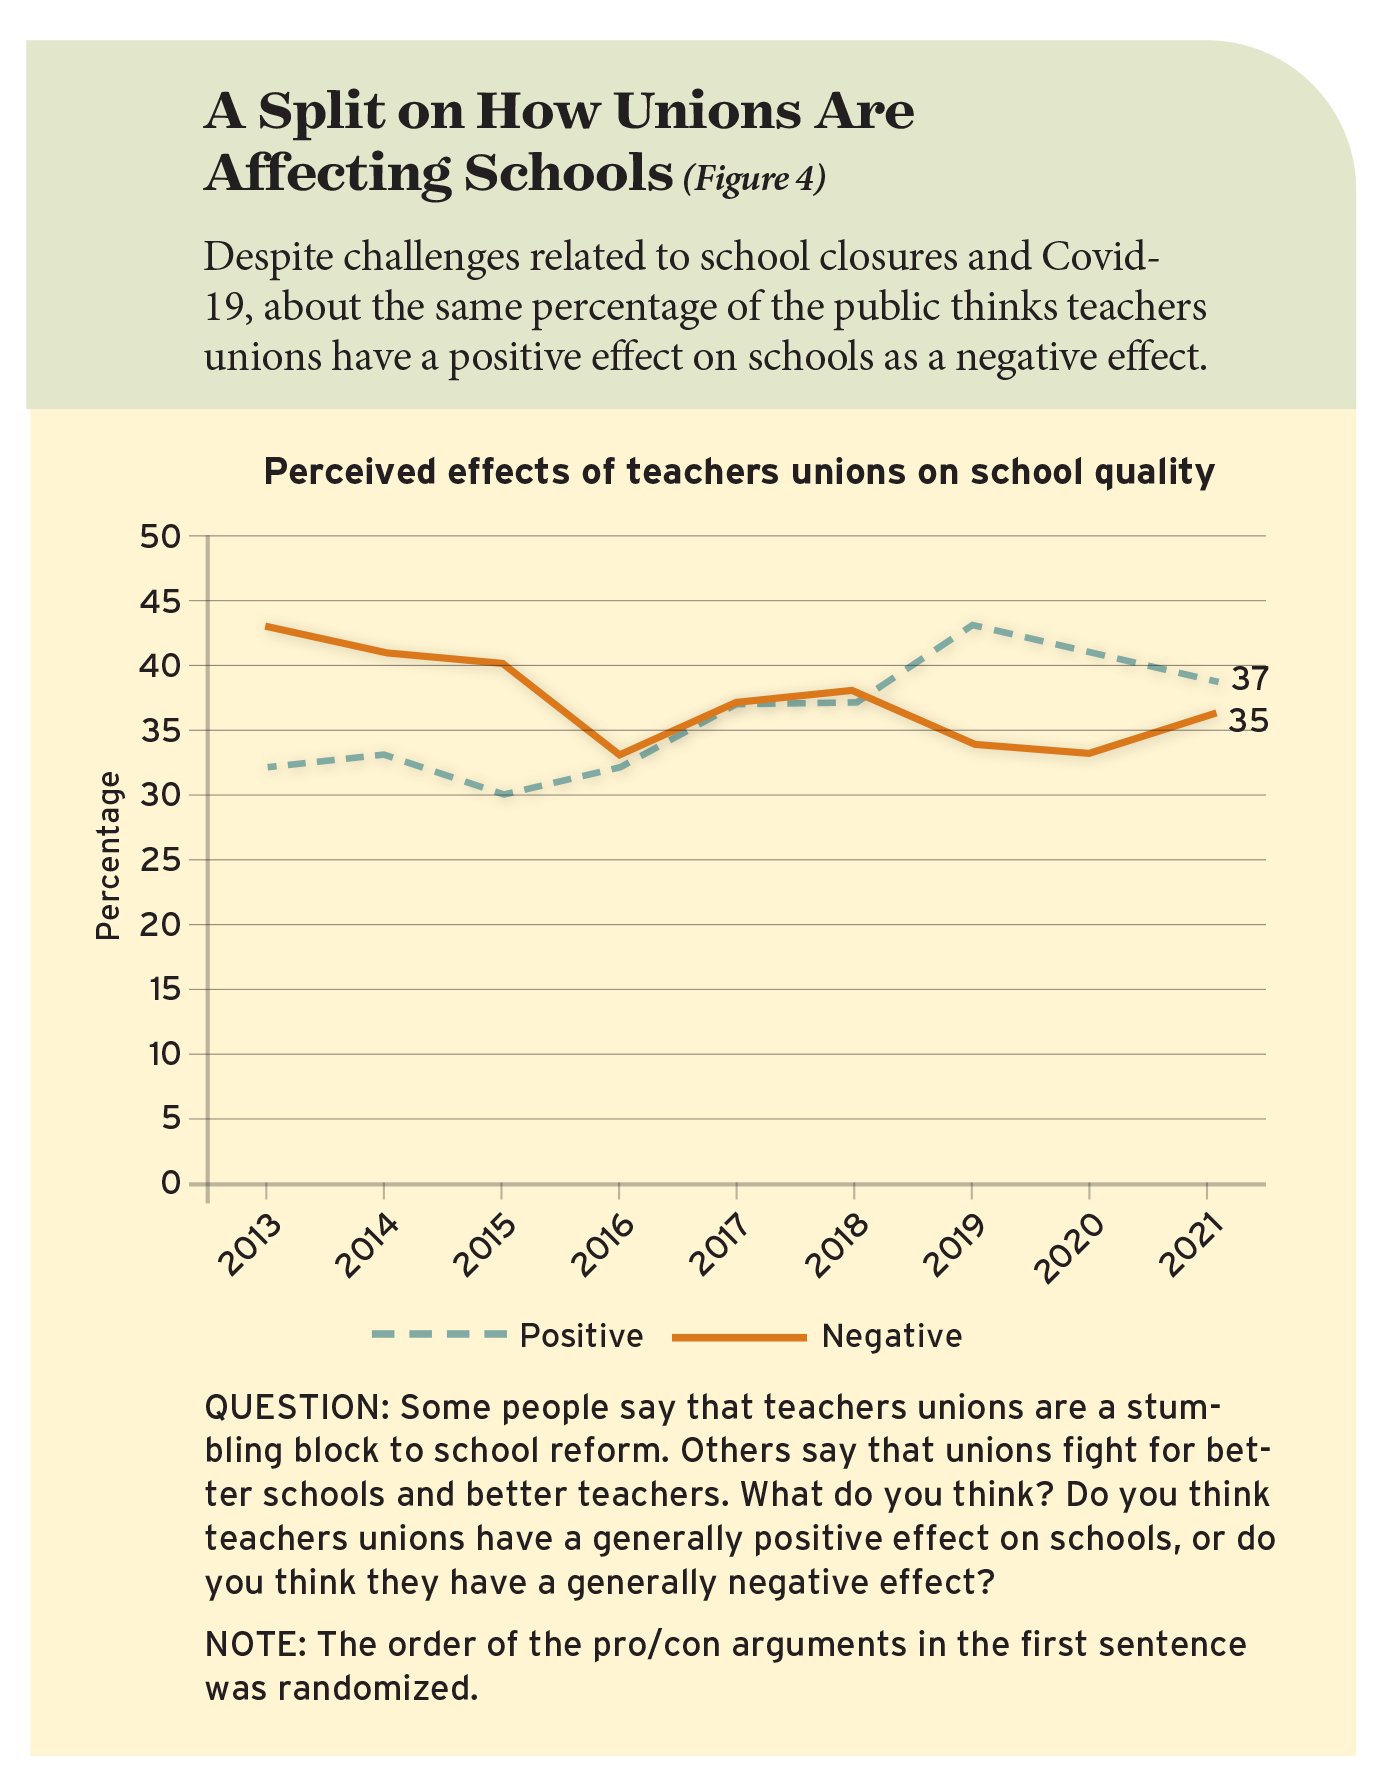 A Split on How Unions Are Affecting Schools (Figure 4)